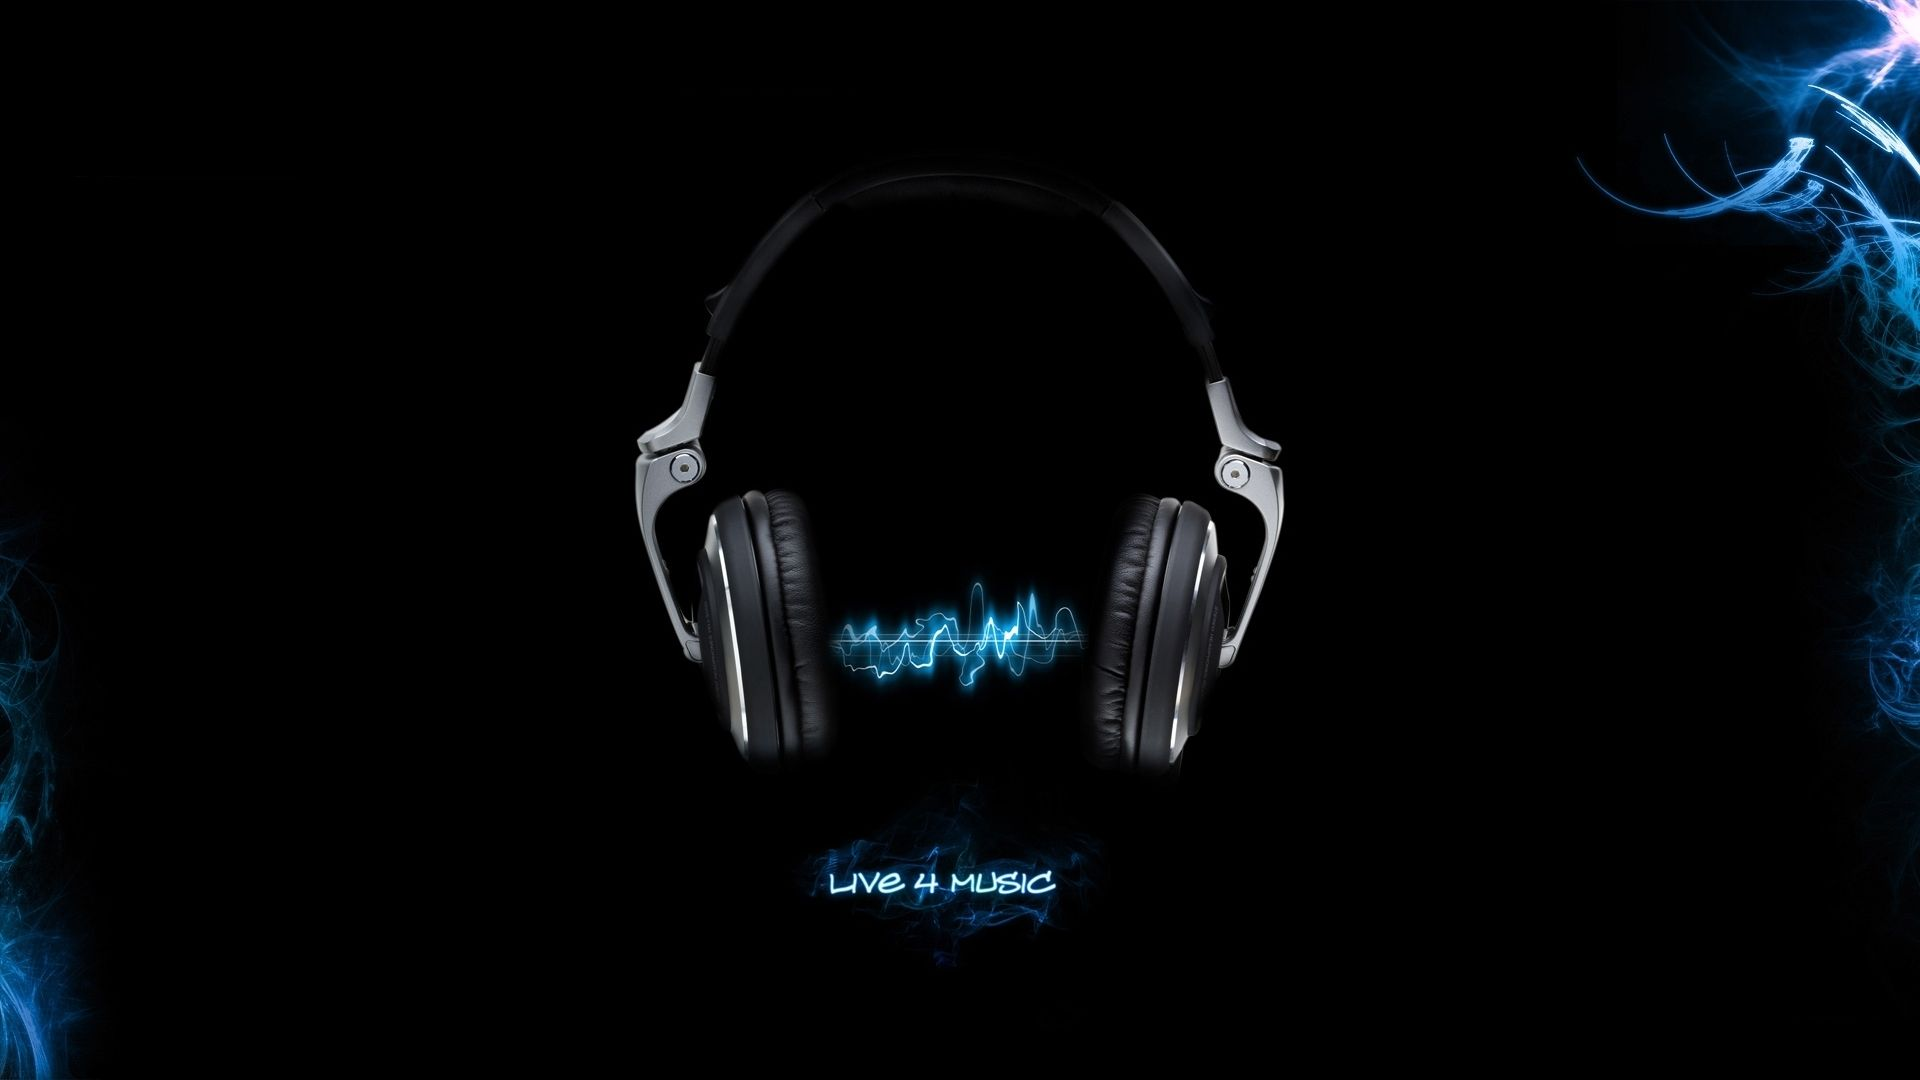 music backgrounds | headphones music black background fresh new hd